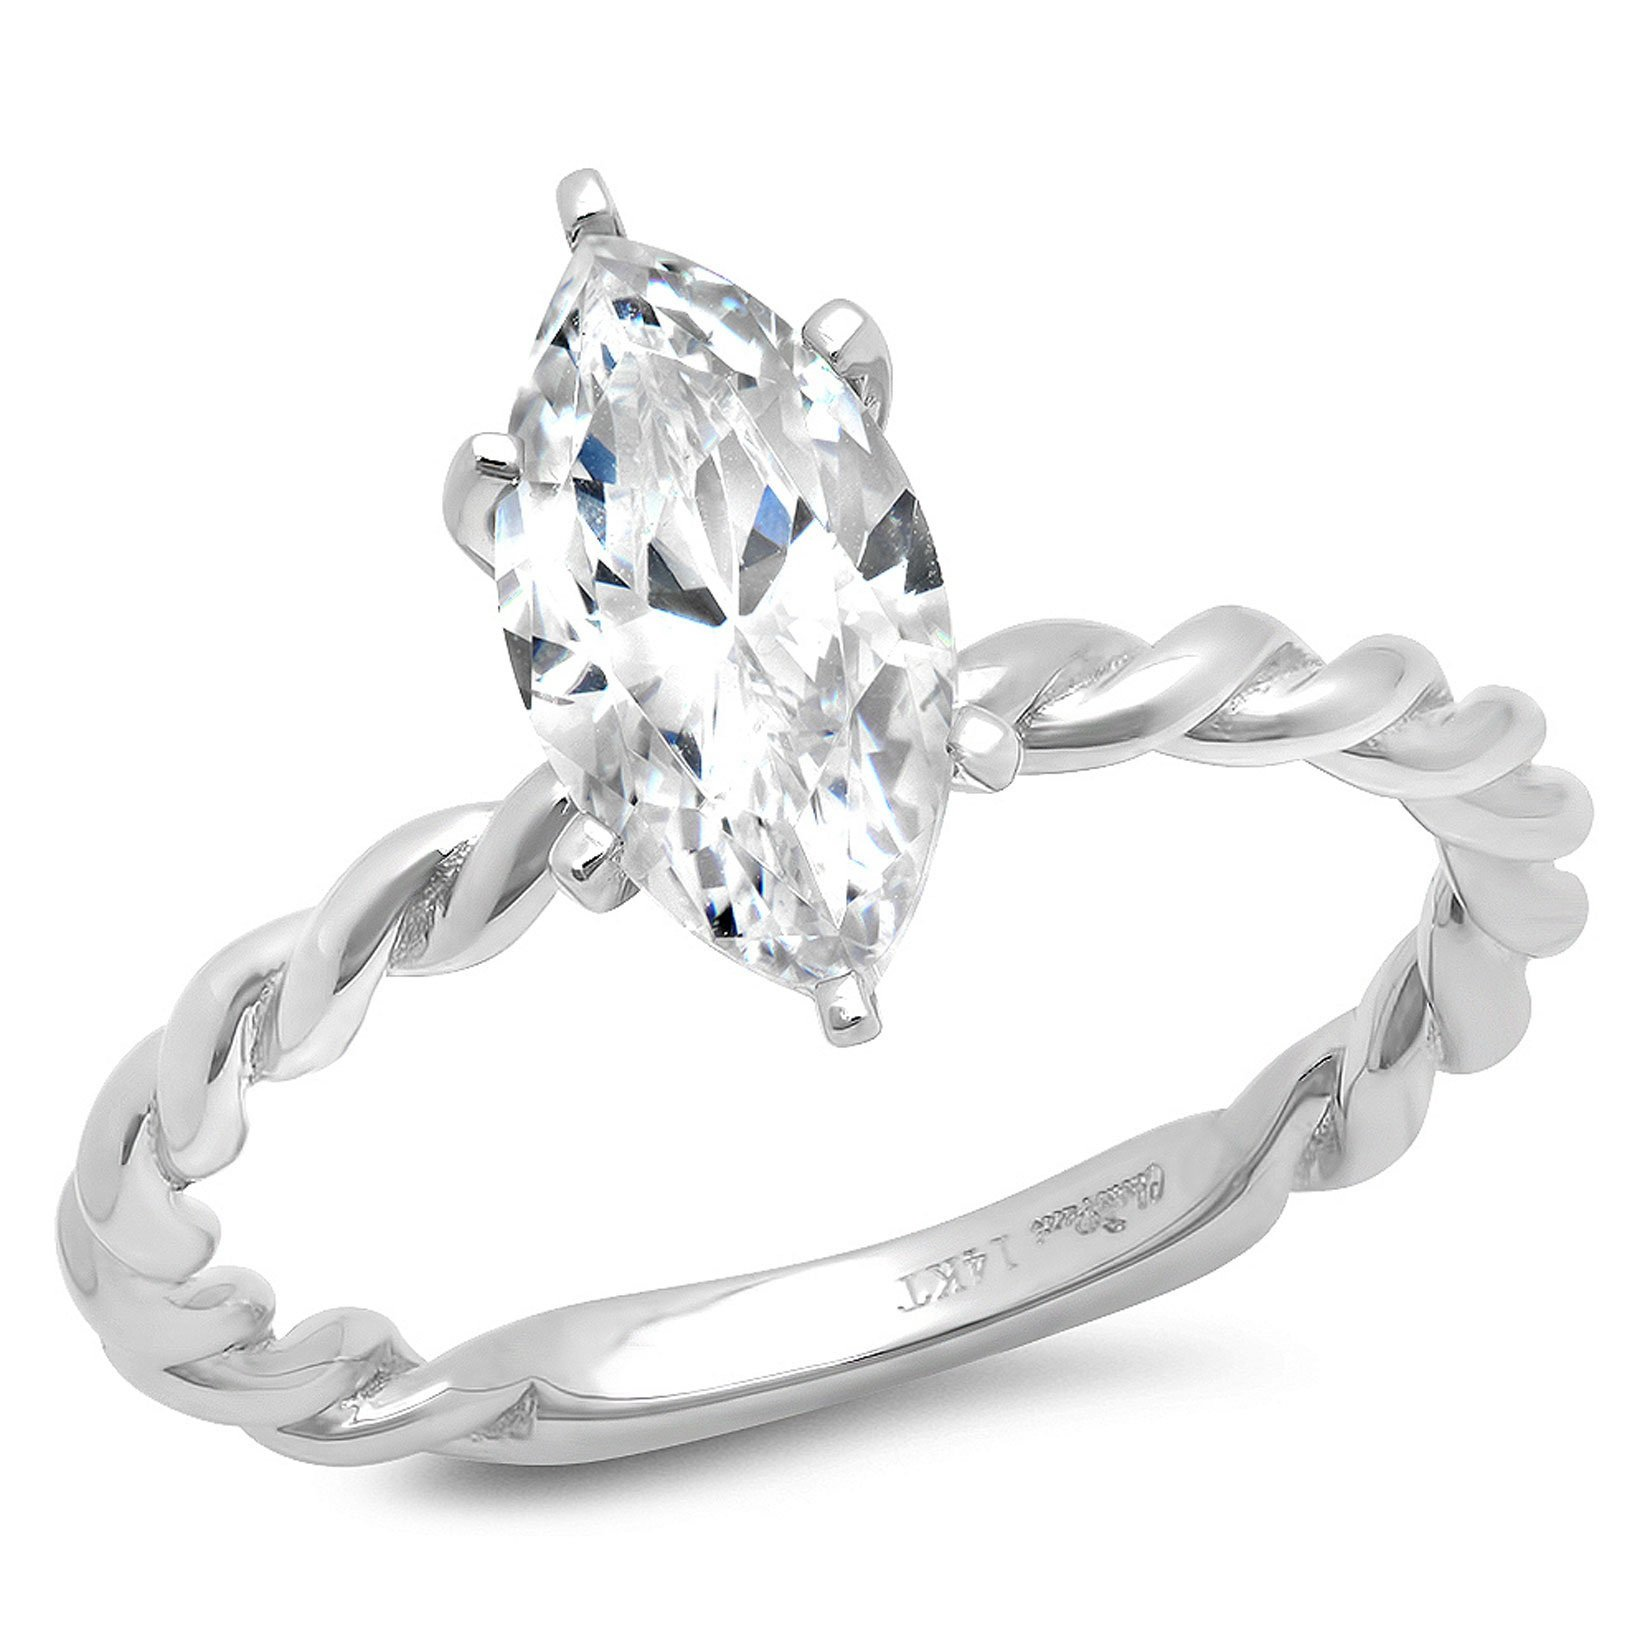 1.95ct Brilliant Marquise Cut Solitaire Rope Twisted Knot Highest Quality Moissanite Ideal D 6-Prong Statement Ring in Solid Real 14k White Gold for Women